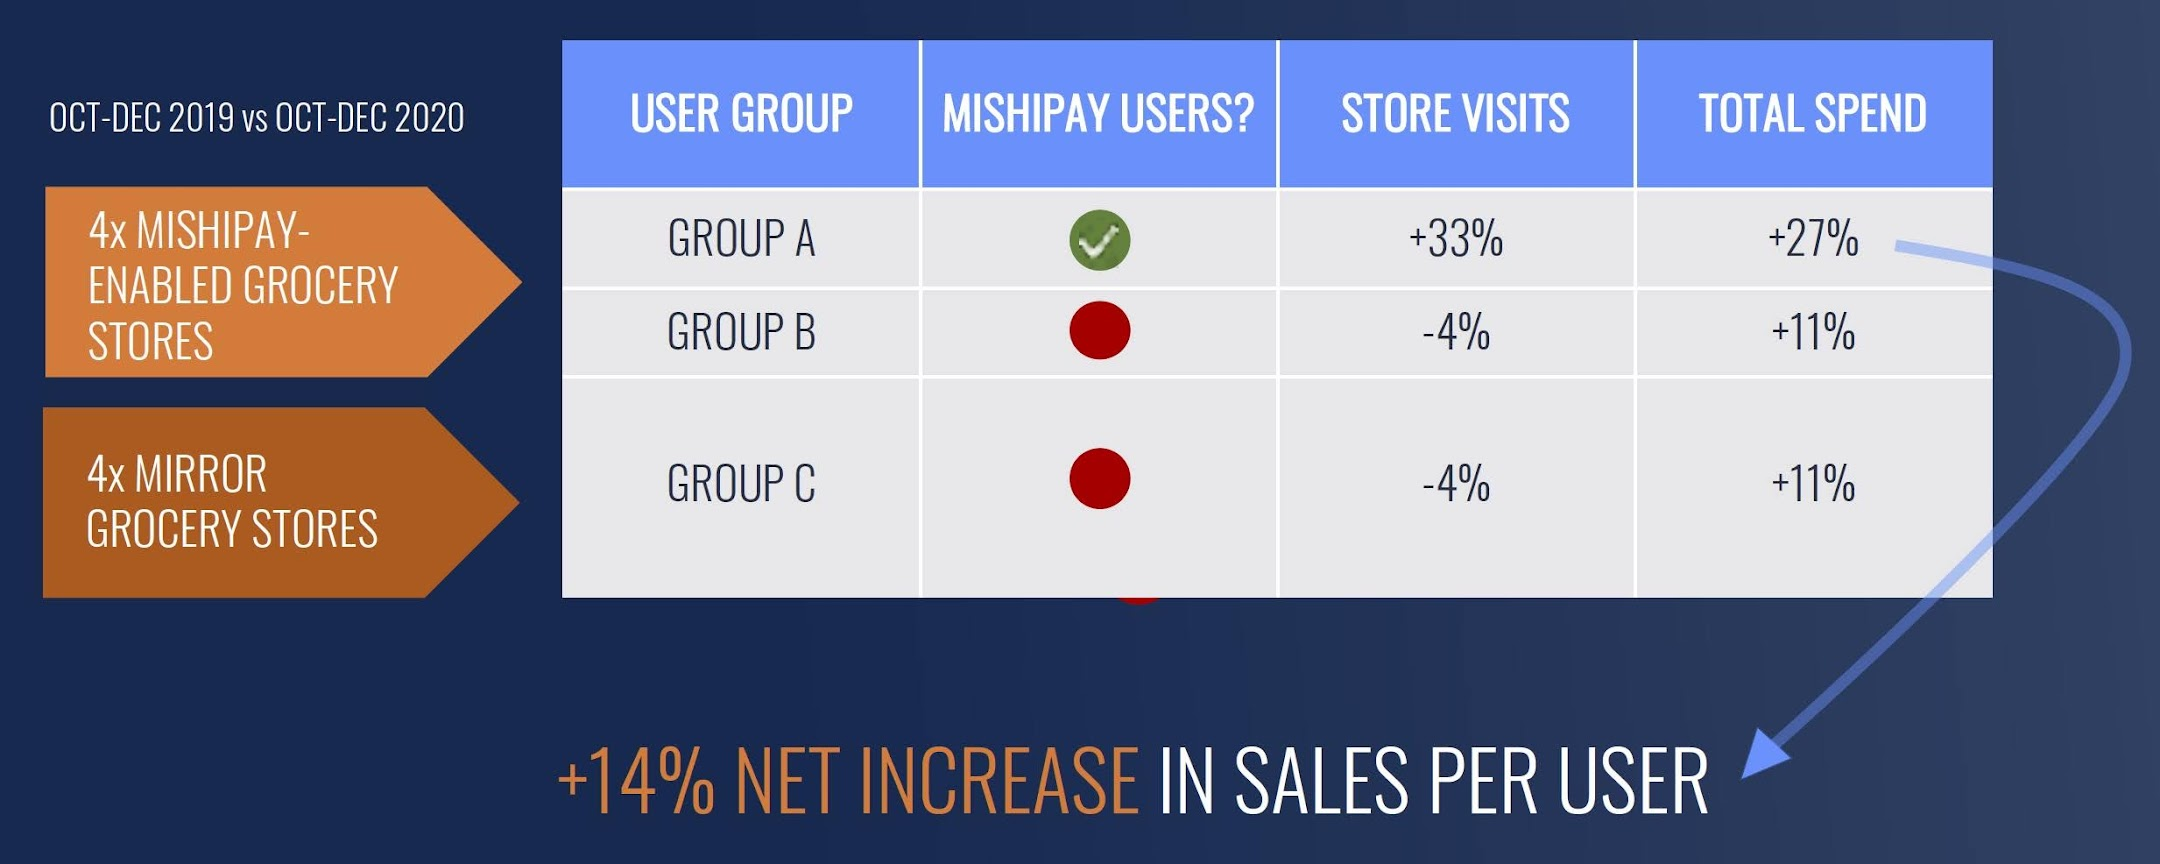 """The """"store visits"""" and """"total spend"""" of user groups A, B, C were then compared between Q4 2019 and Q4 2020, using the loyalty card number of the shopper."""